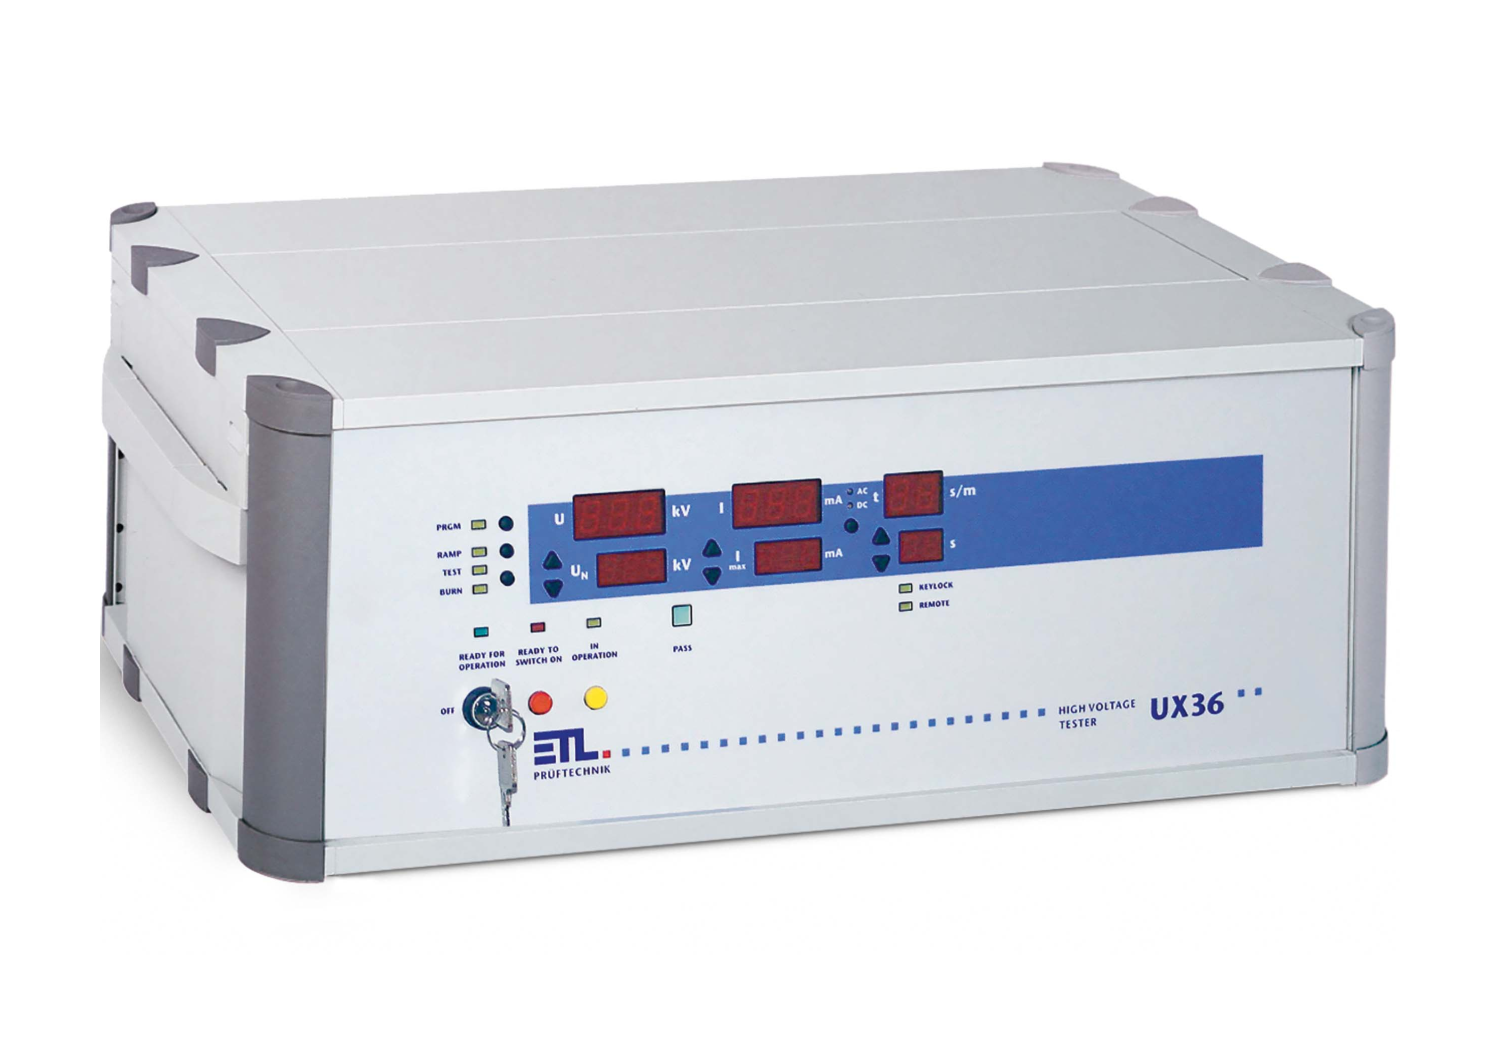 UX36-DC-10-0010-TPT   [10kV DC / 50 mA 500 VA with dry transformer] Flash Tester (HIPOT)